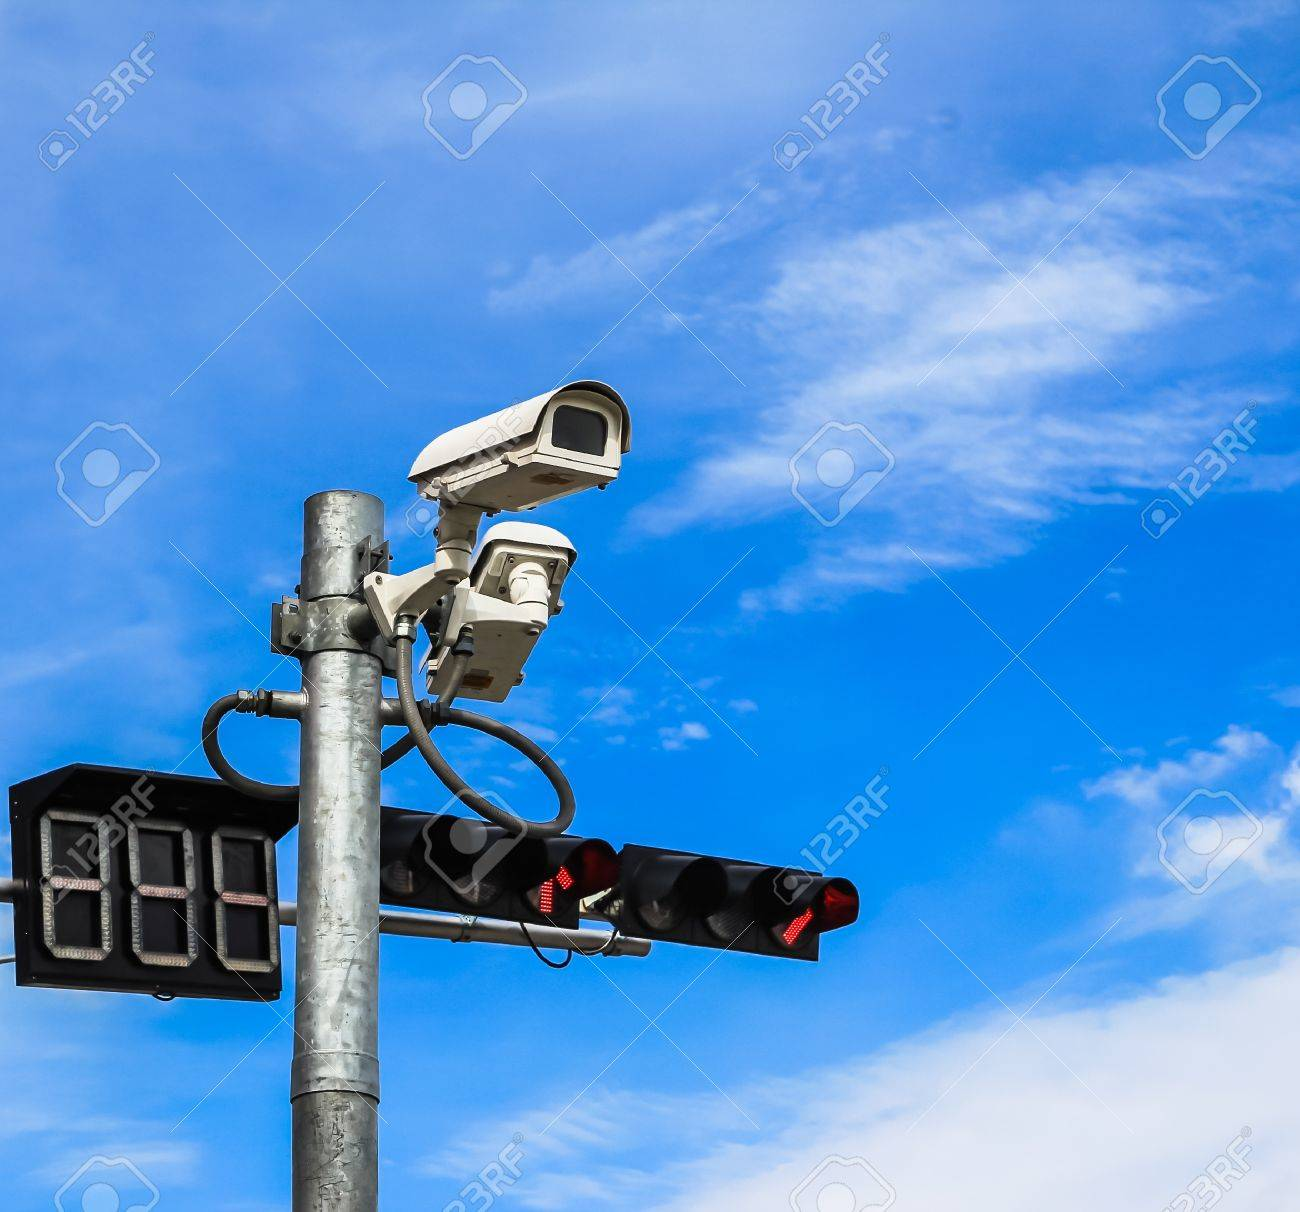 surveillance camera and traffic light against blue sky Stock Photo - 17679916